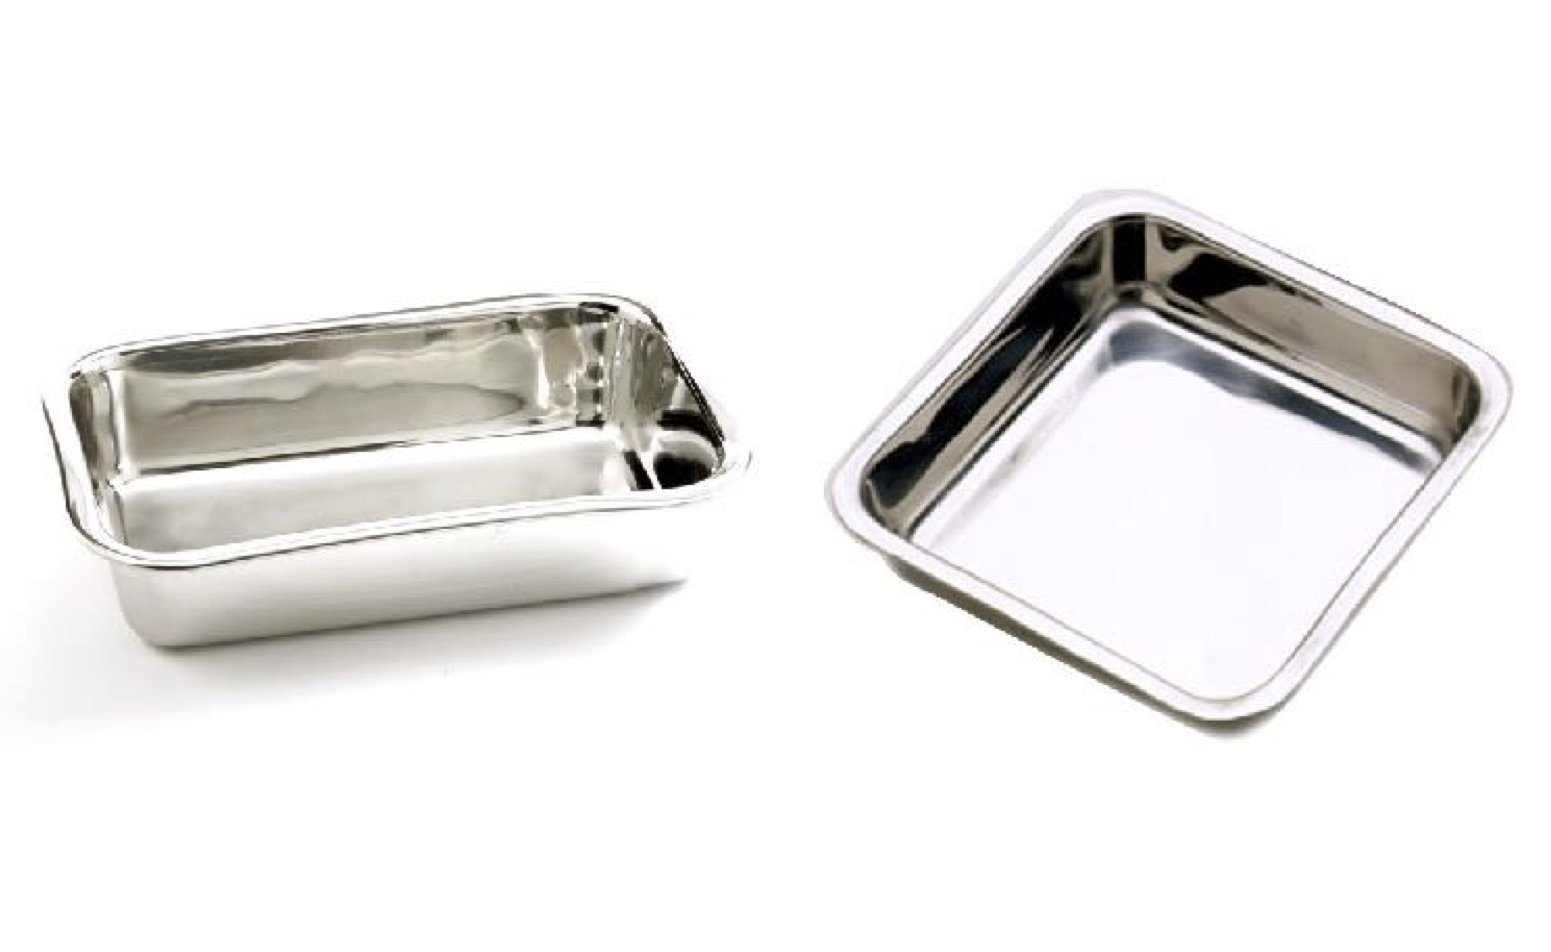 Norpro Combo: 8.5'' Loaf Pan and 7.5'' Square Cake Pan, Stainless Steel by Norpro